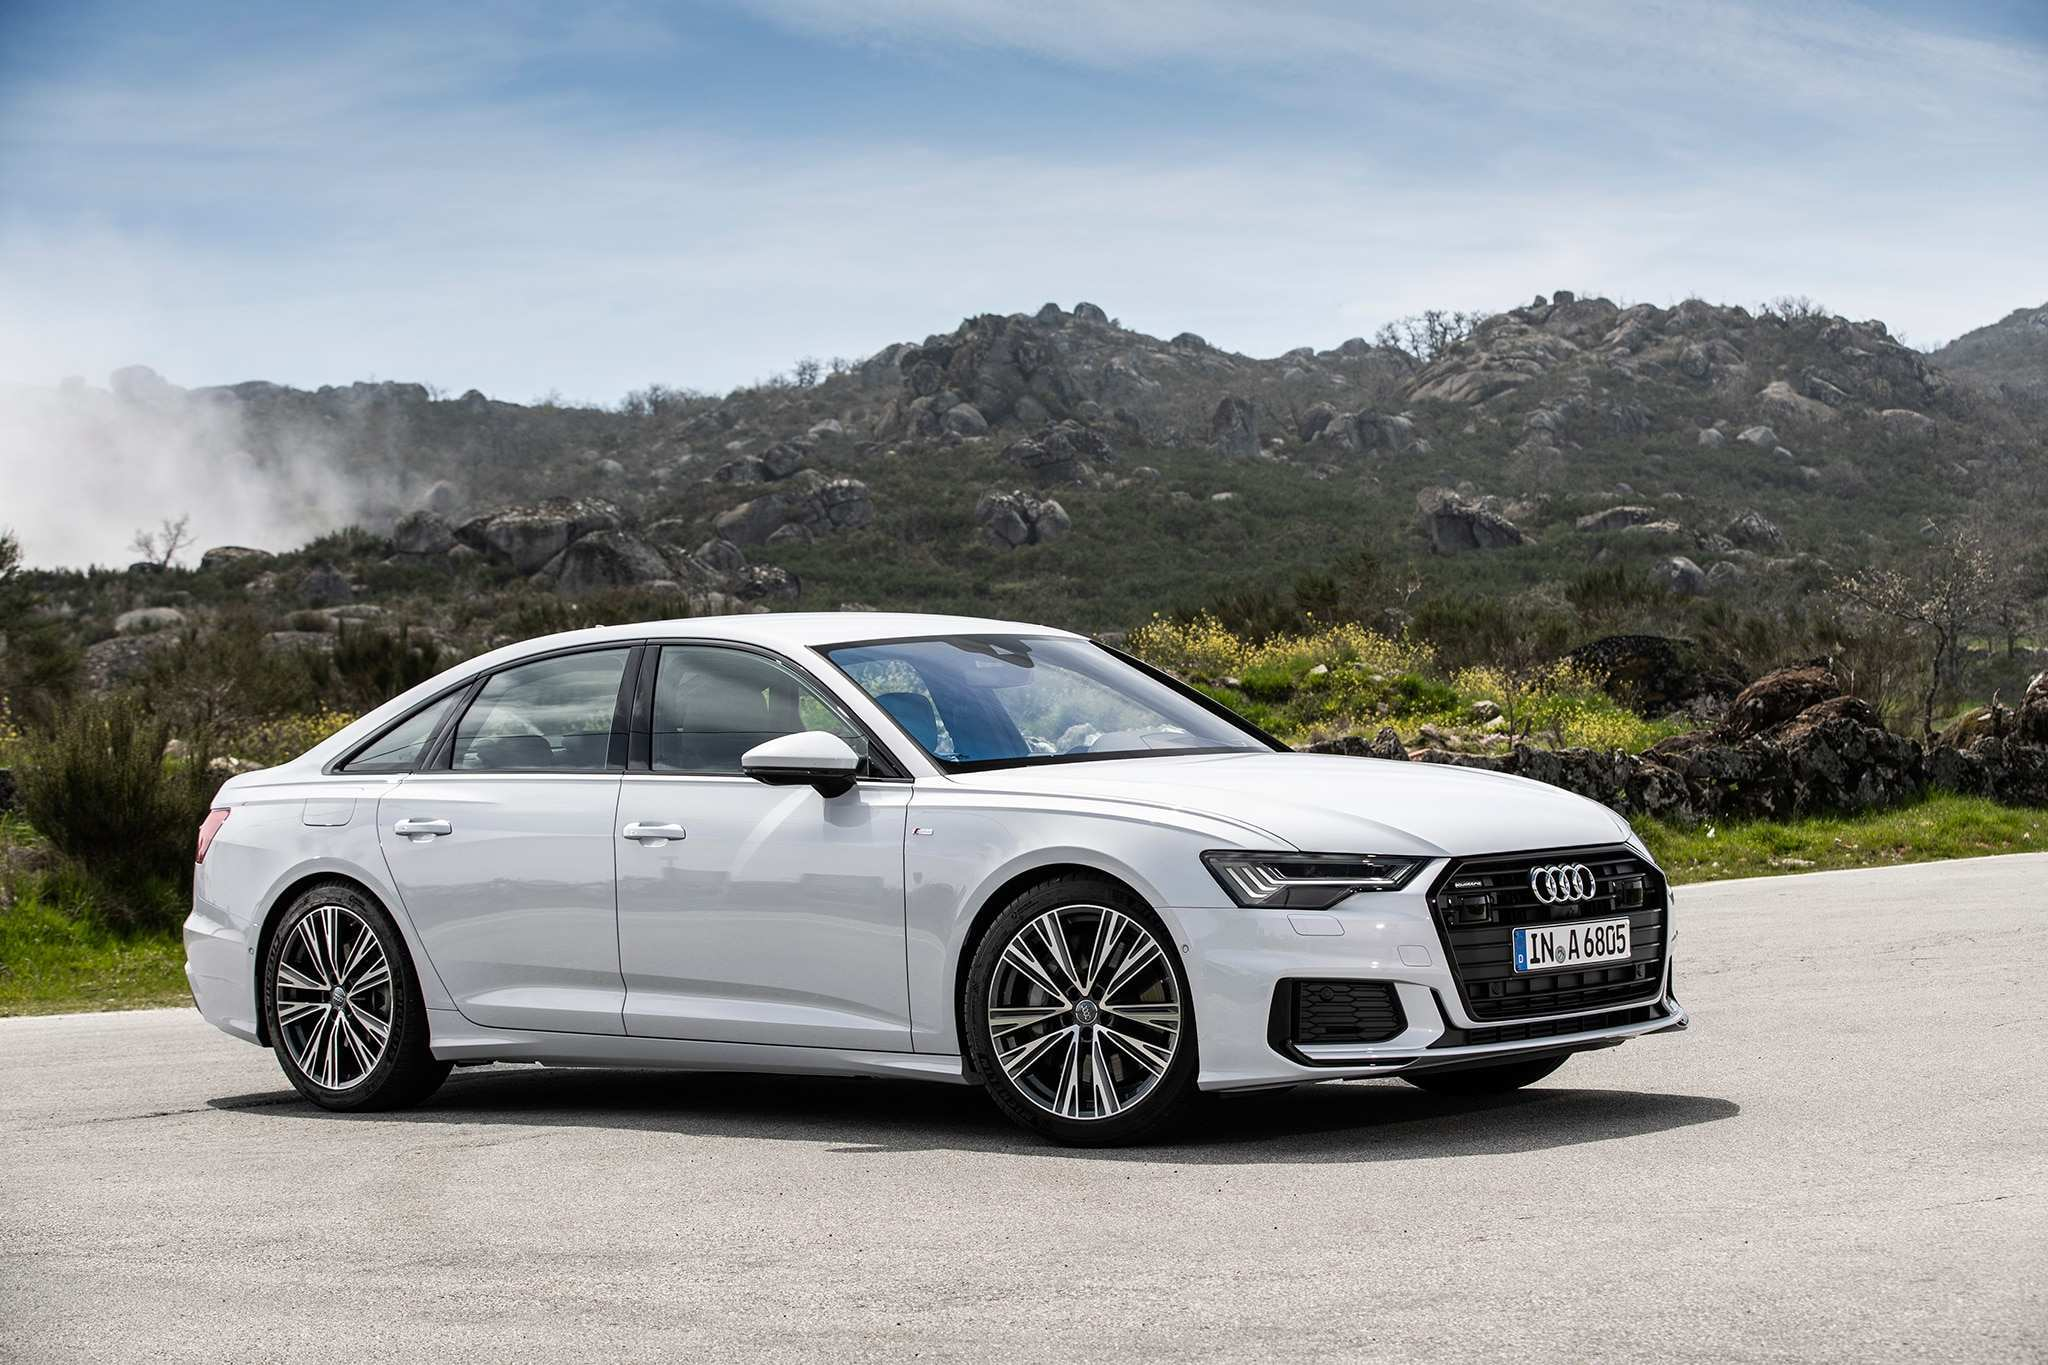 71 Best Review 2019 Audi A6 Specs Model with 2019 Audi A6 Specs